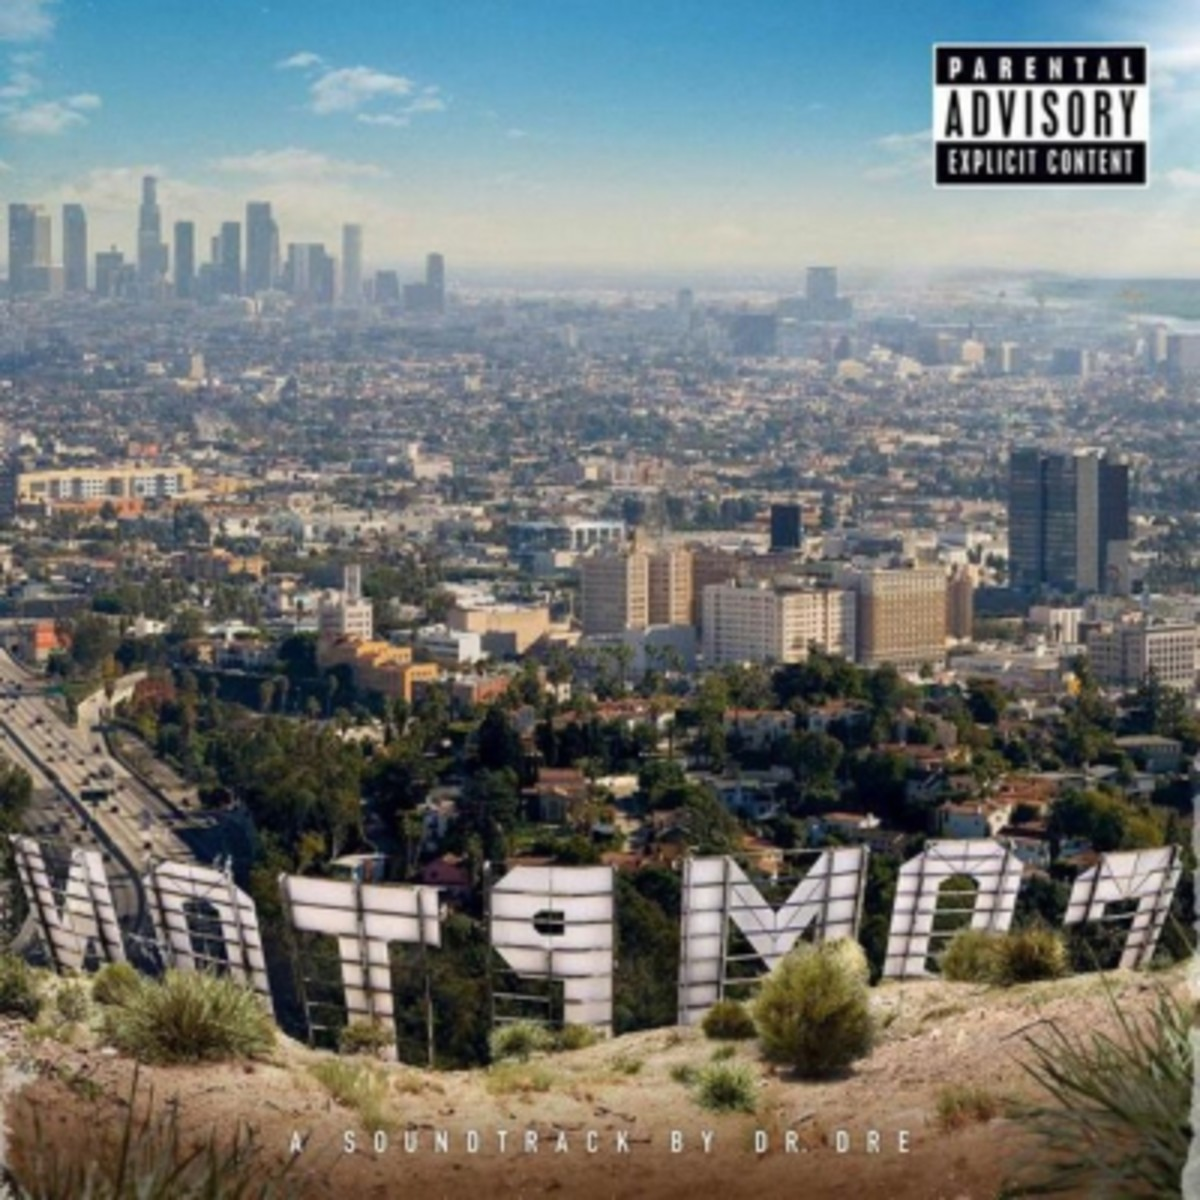 dr-dre-compton-a-soundtrack-by.jpg